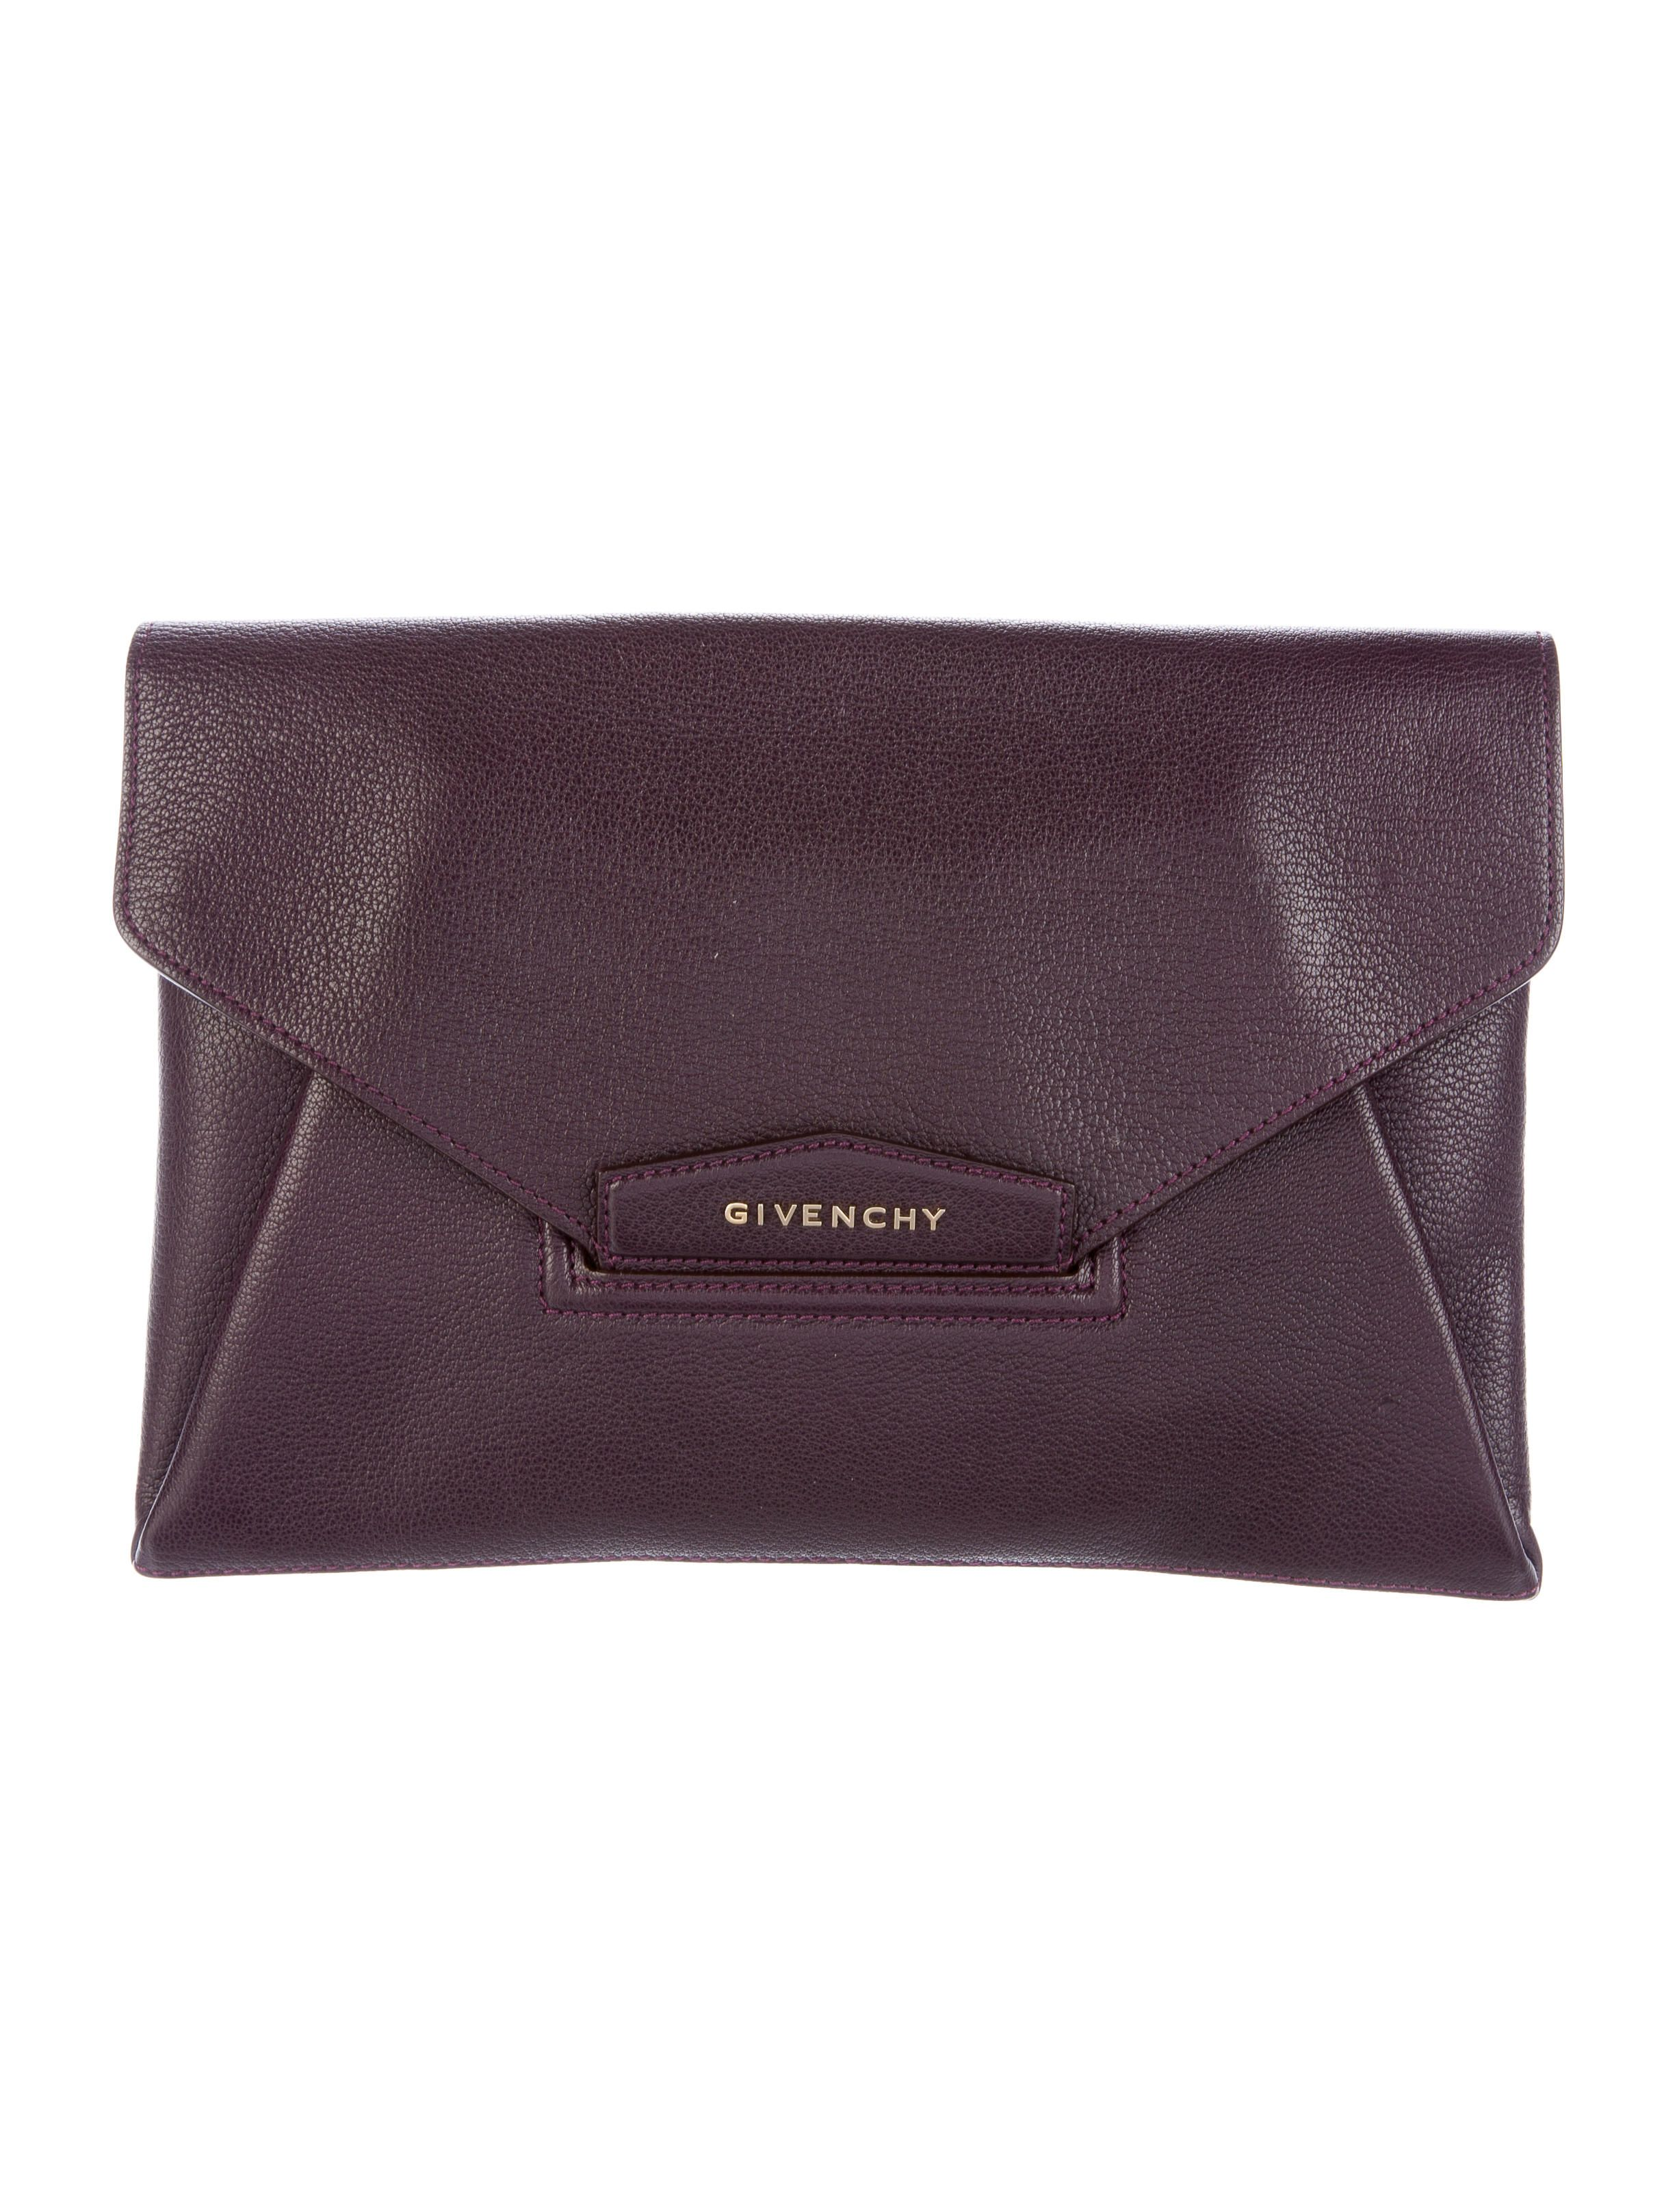 5f74ea528ded Plum grained goatskin leather Givenchy Antigona envelope clutch with  gold-tone hardware